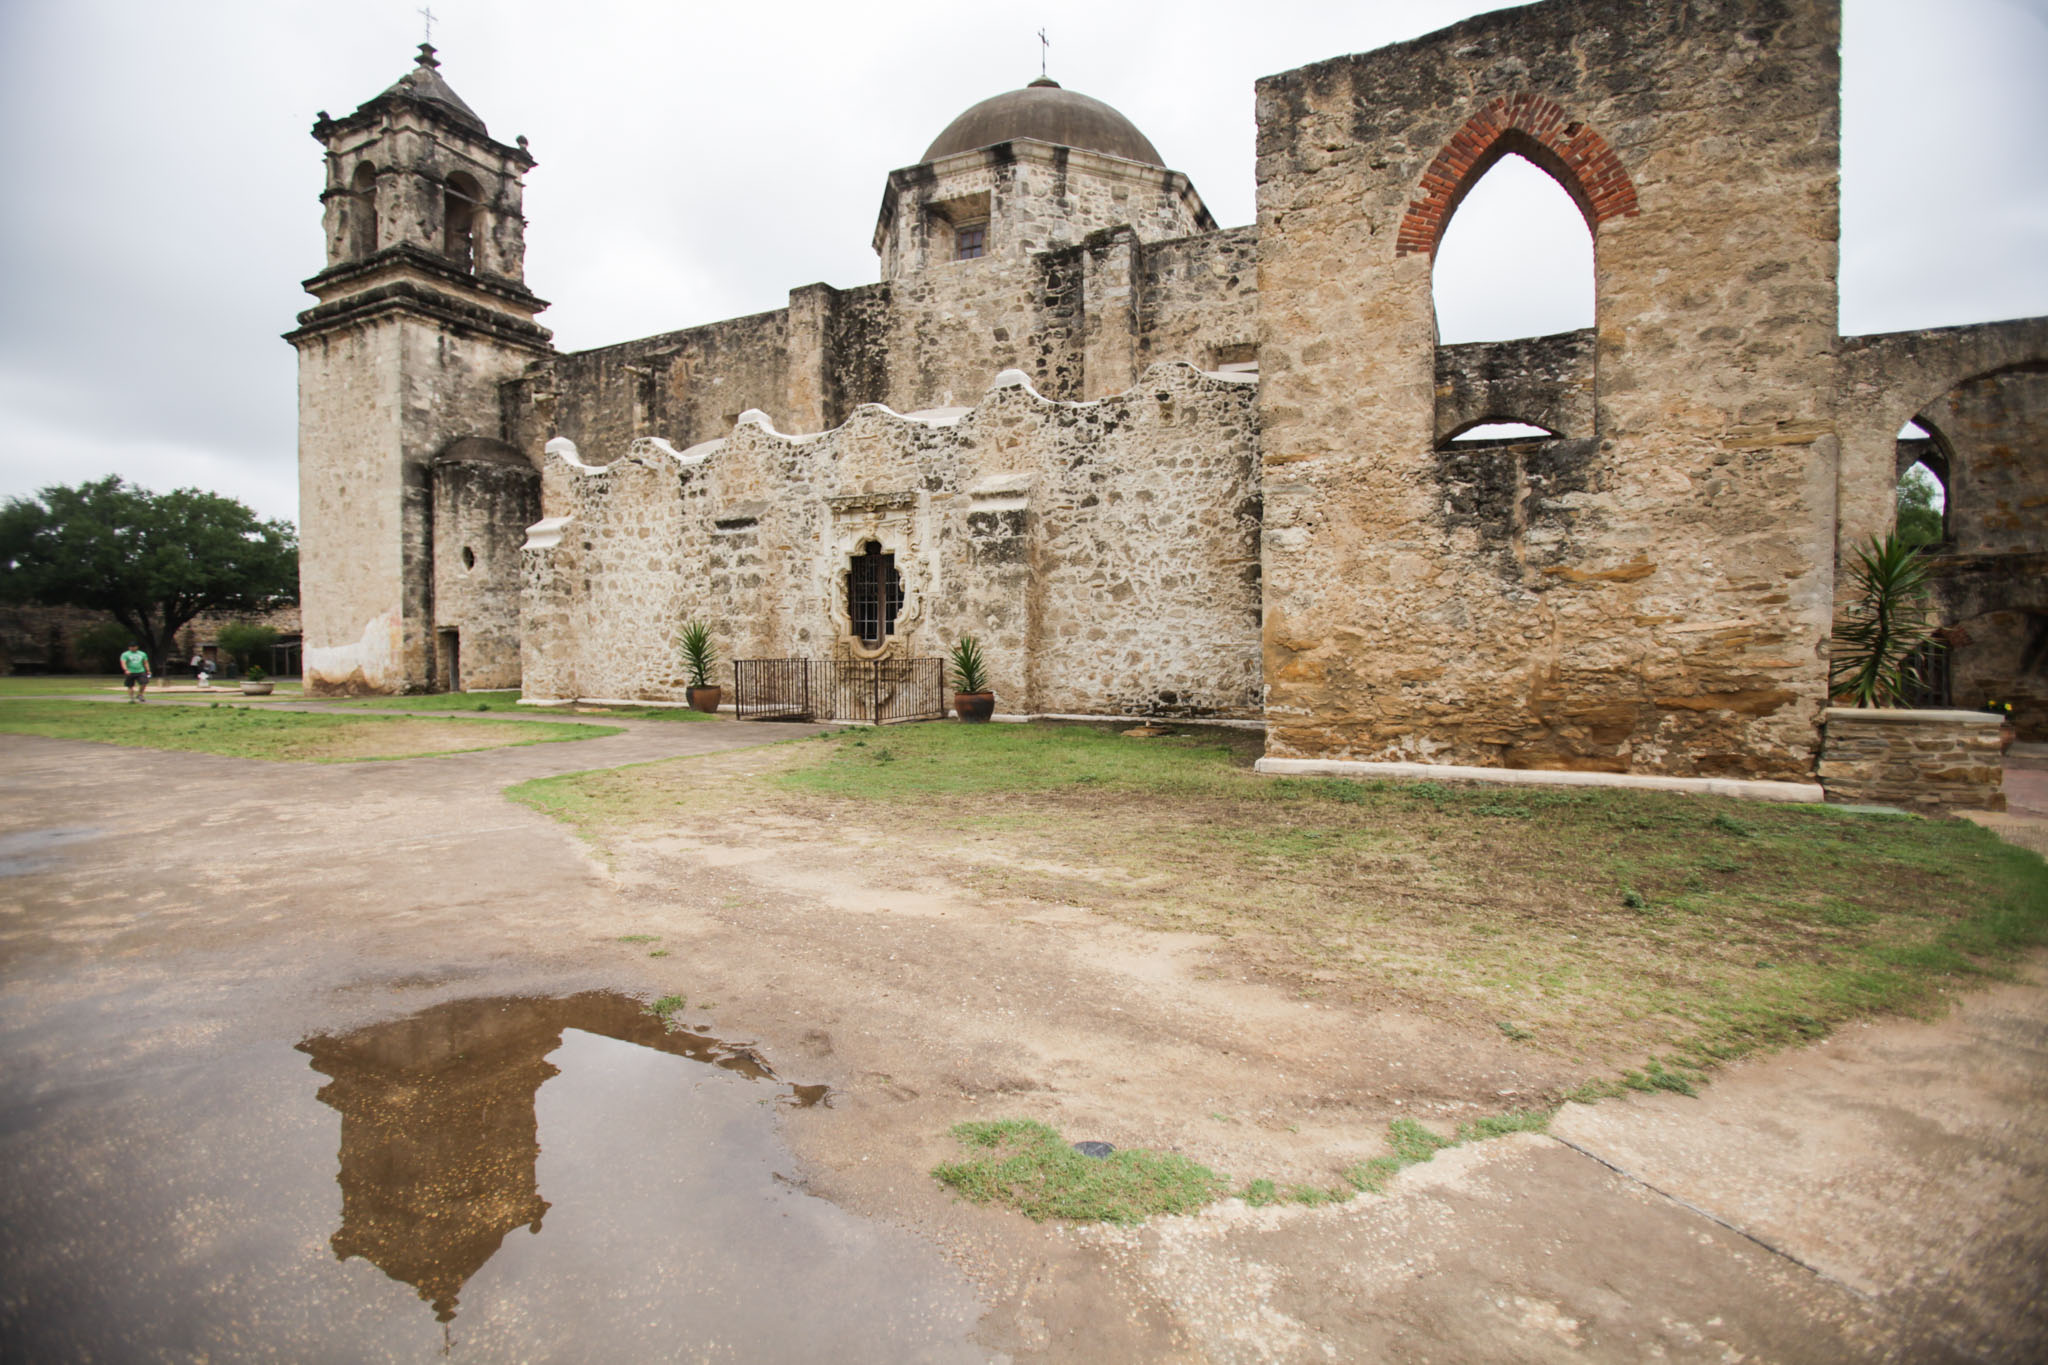 Construction is already taking place at San Antonio Missions National Historic Park.